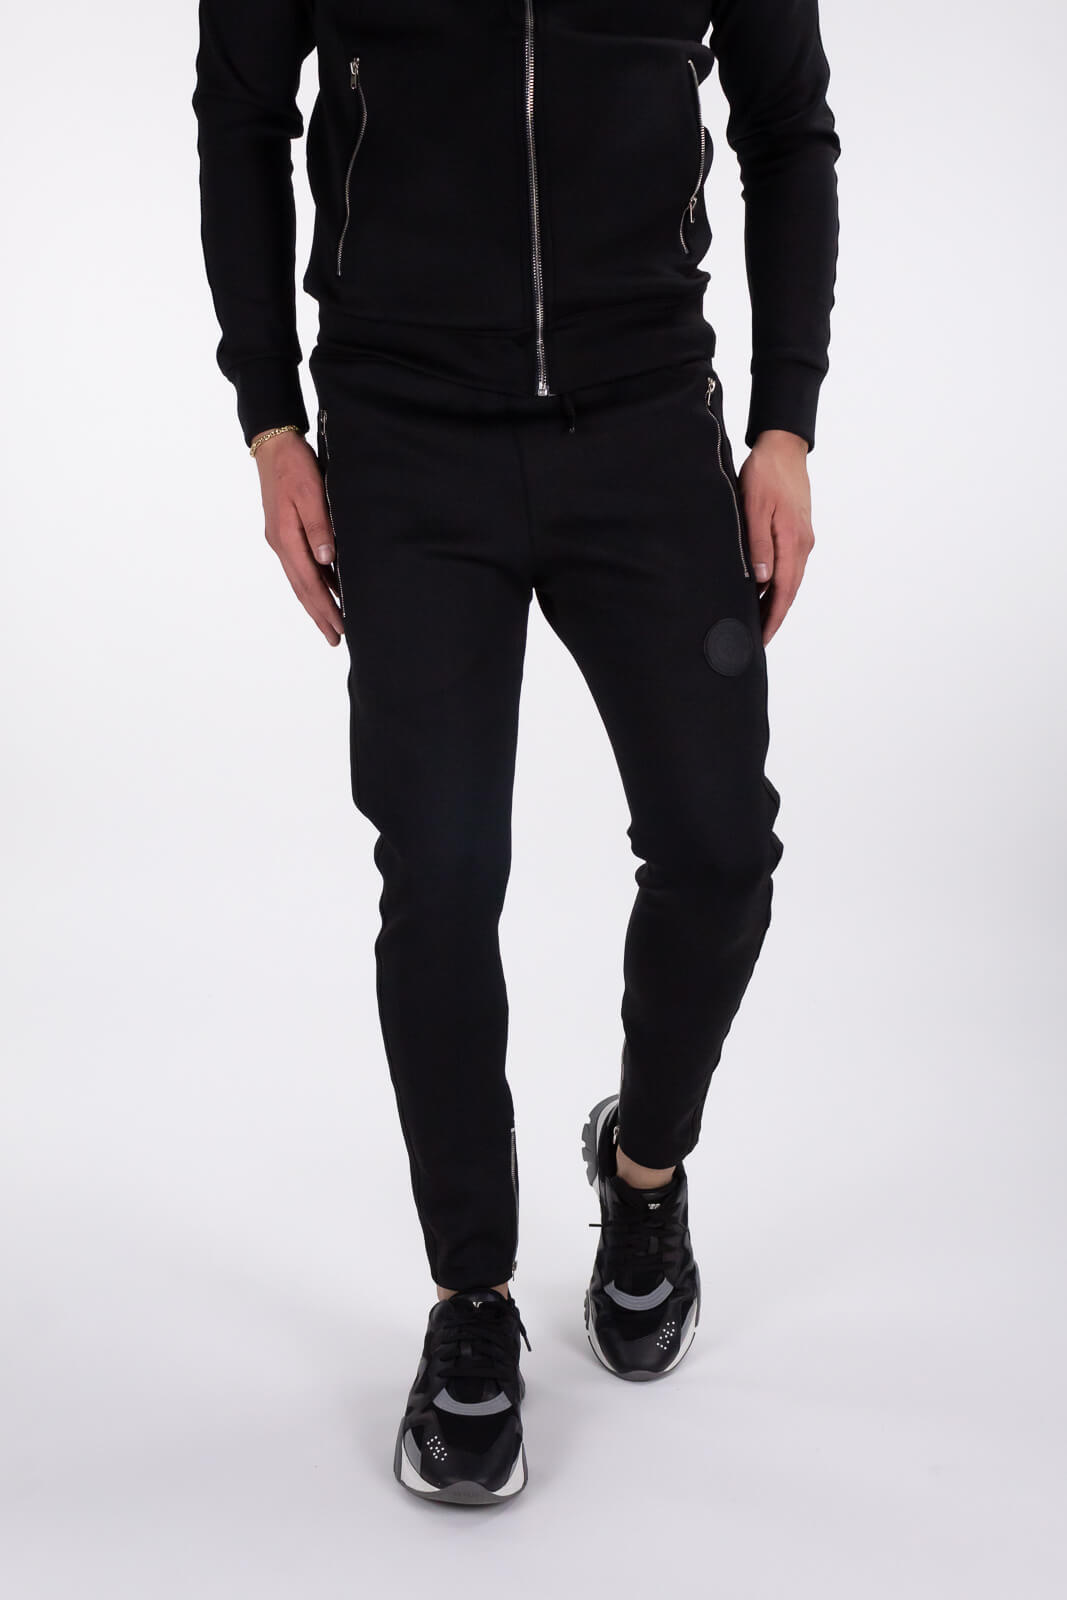 Richesse Generalissimo Tracksuit-09